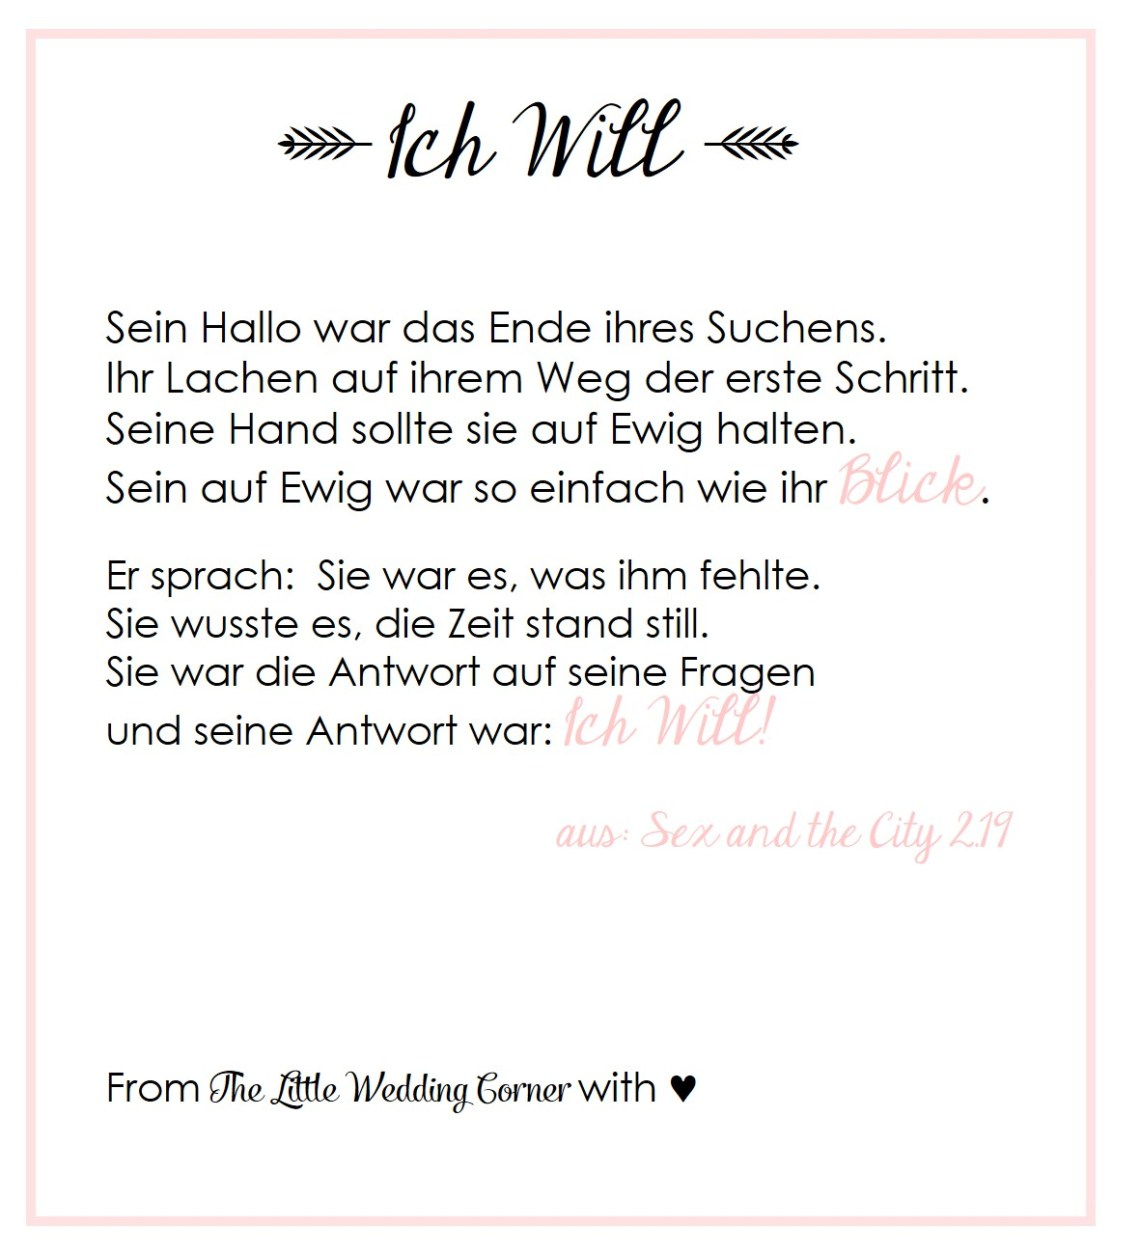 And The City Gedicht Hochzeit